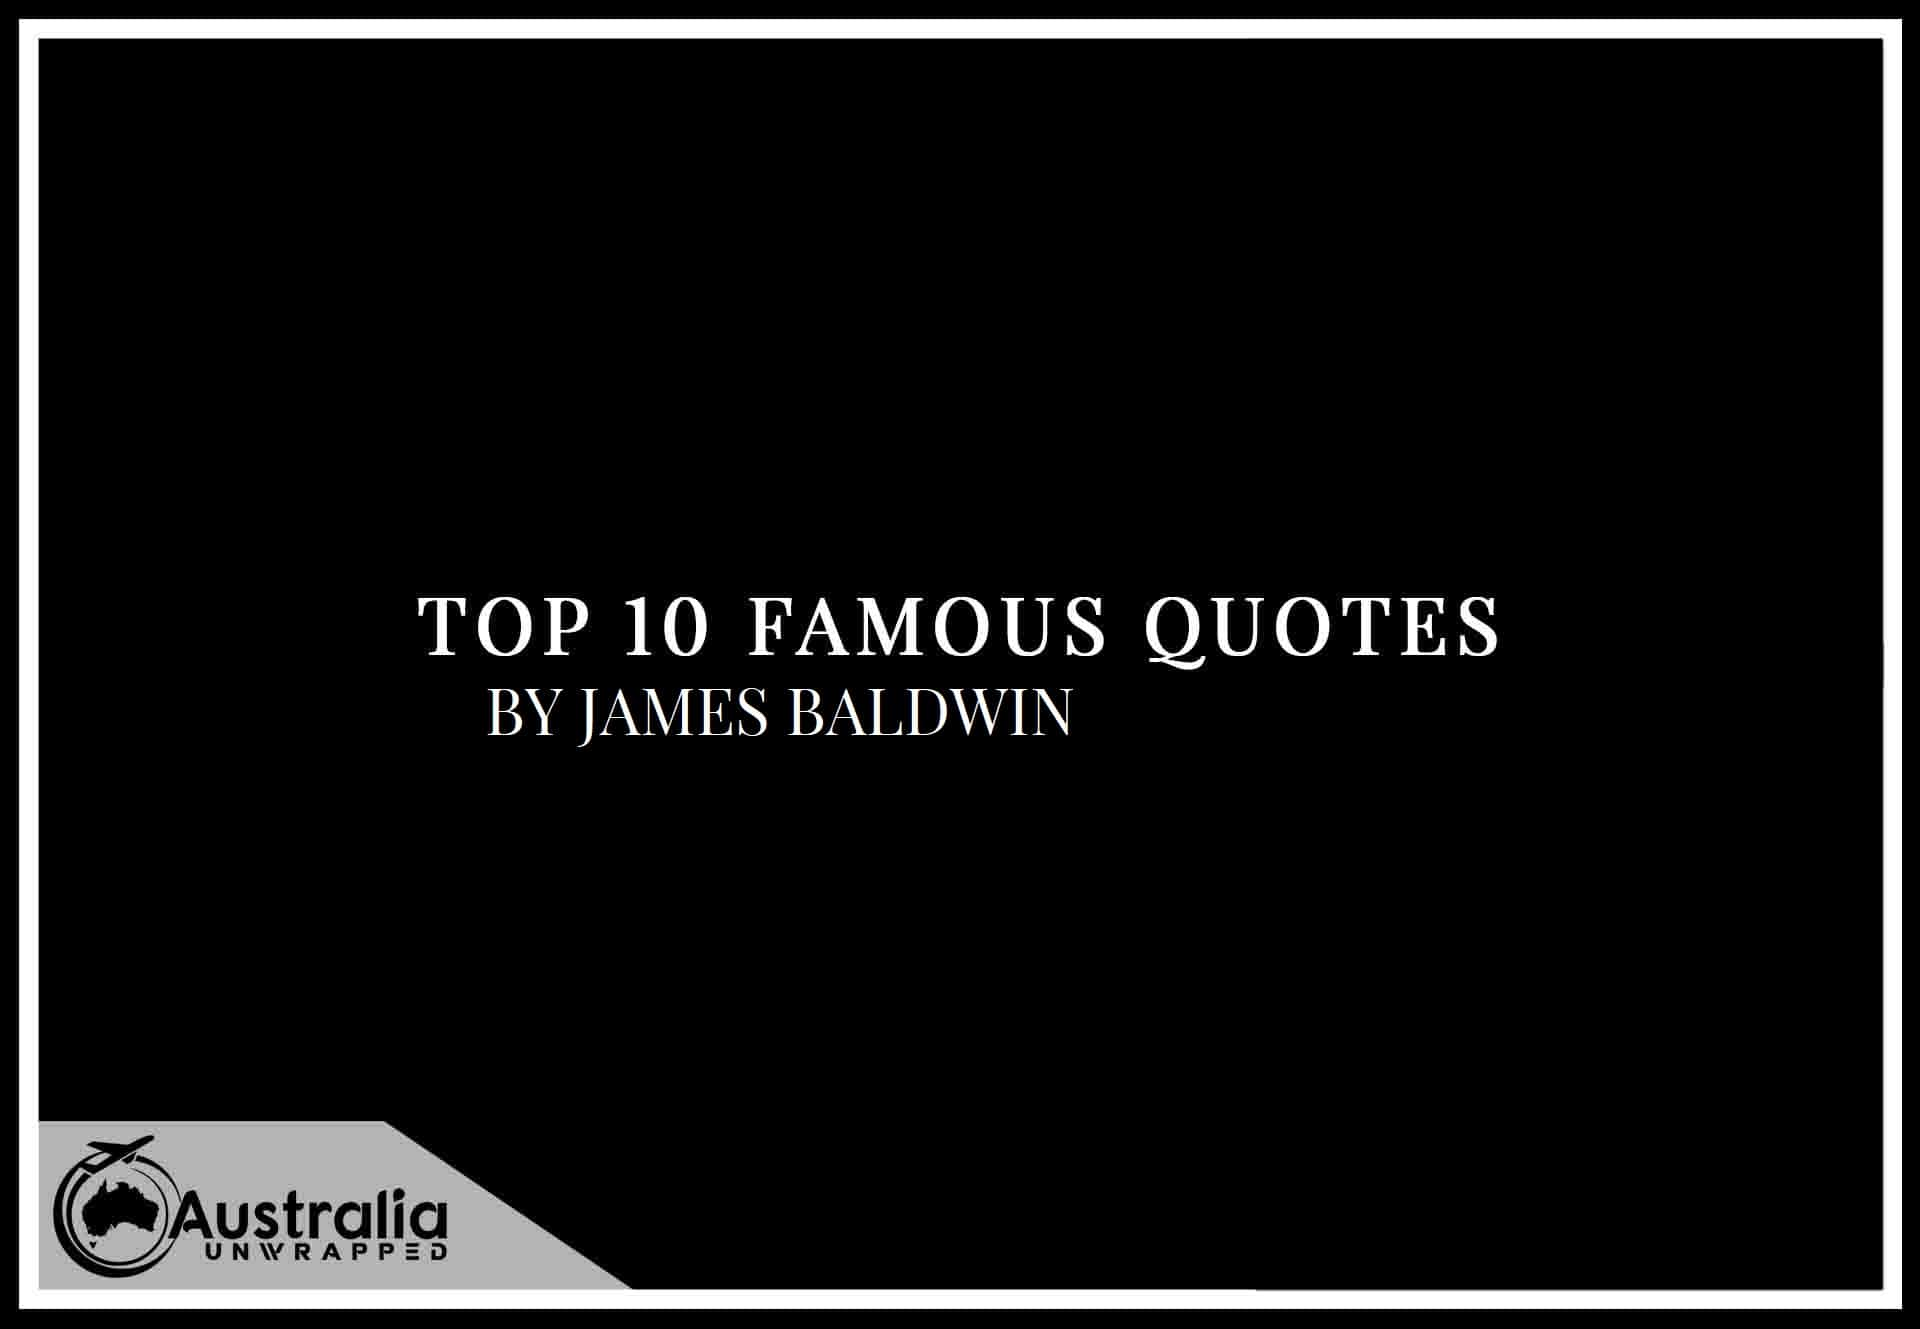 Top 10 Famous Quotes by Author James Baldwin